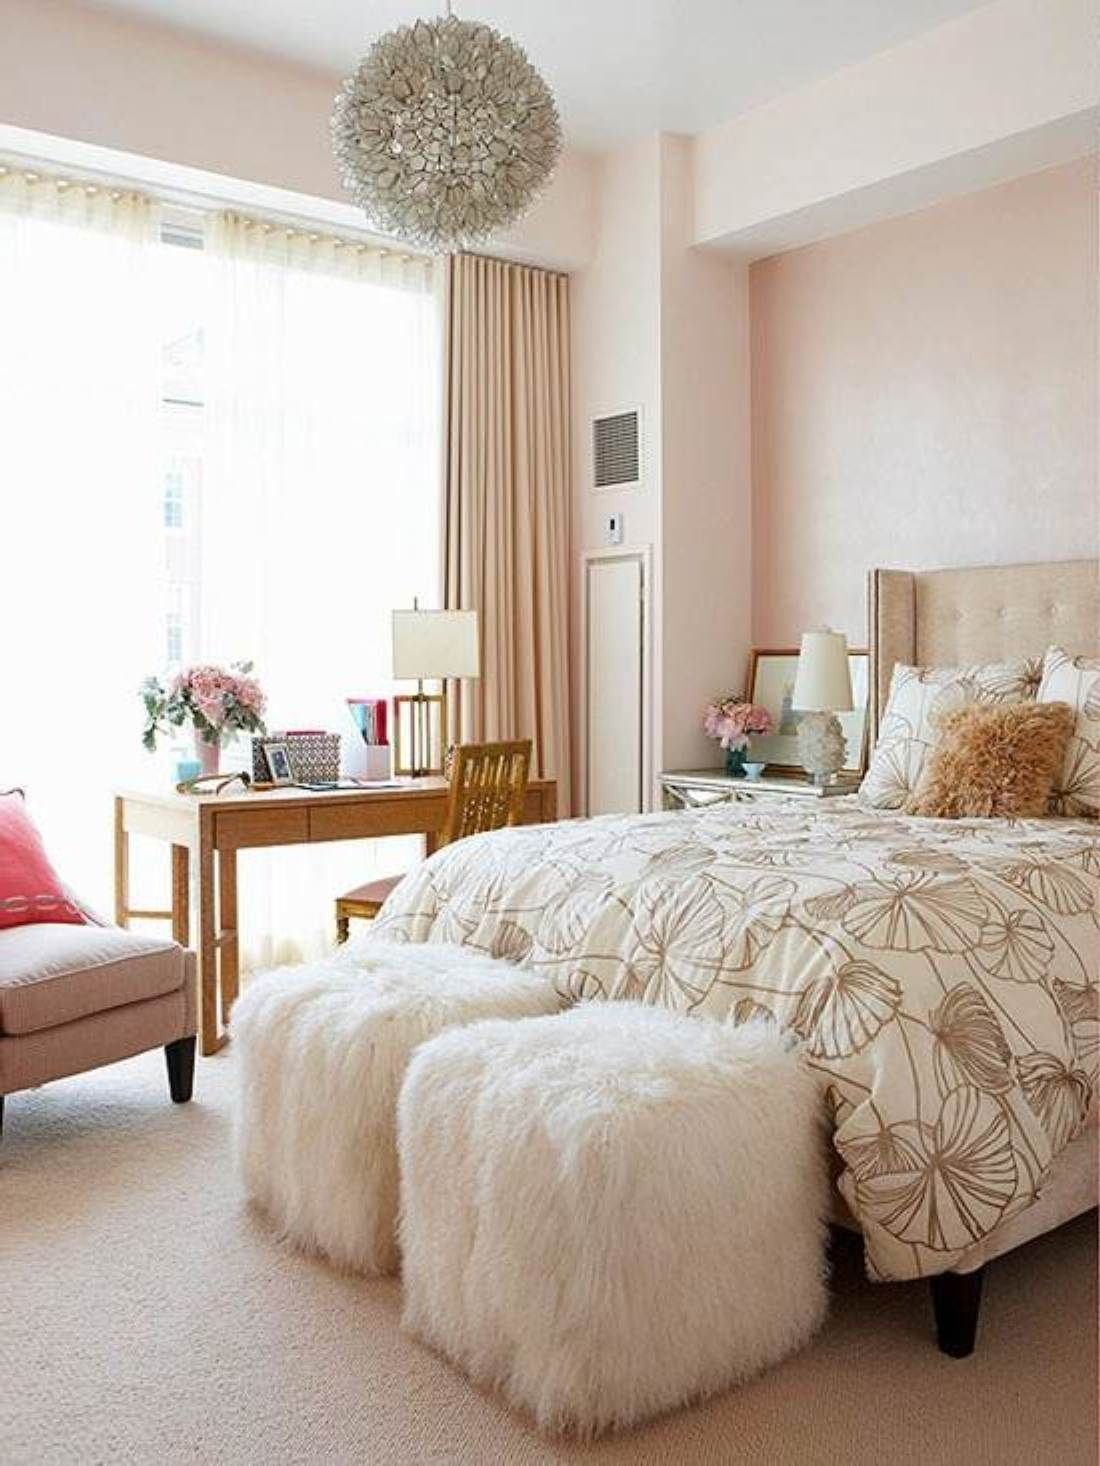 bedroom ideas for women Elegant and Chic Bedroom Designs for Women in 2018 | Korea Dorm  bedroom ideas for women